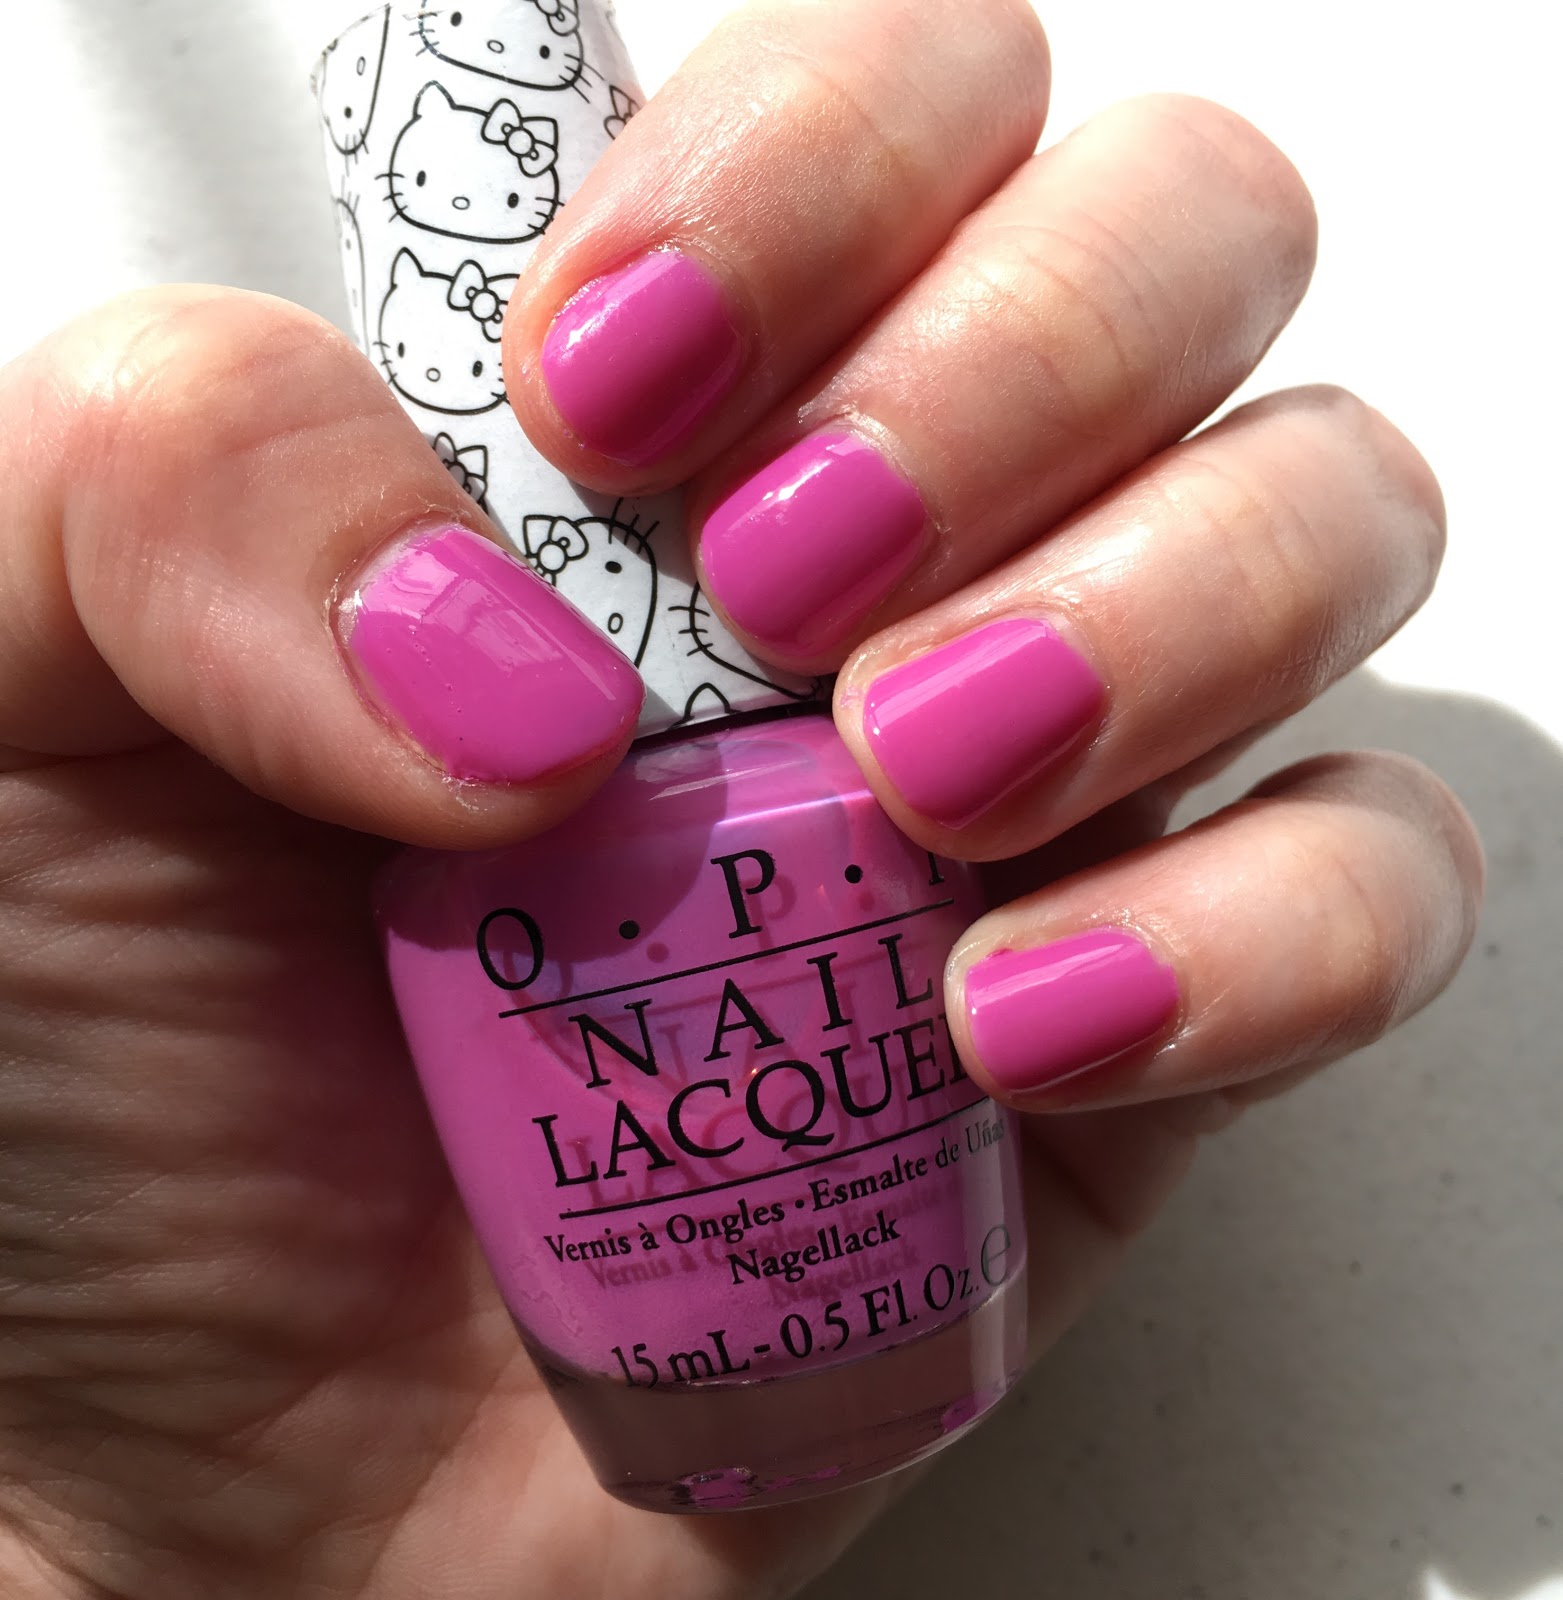 the beauty of life: #manimonday: hello kittyopi super cute in pink